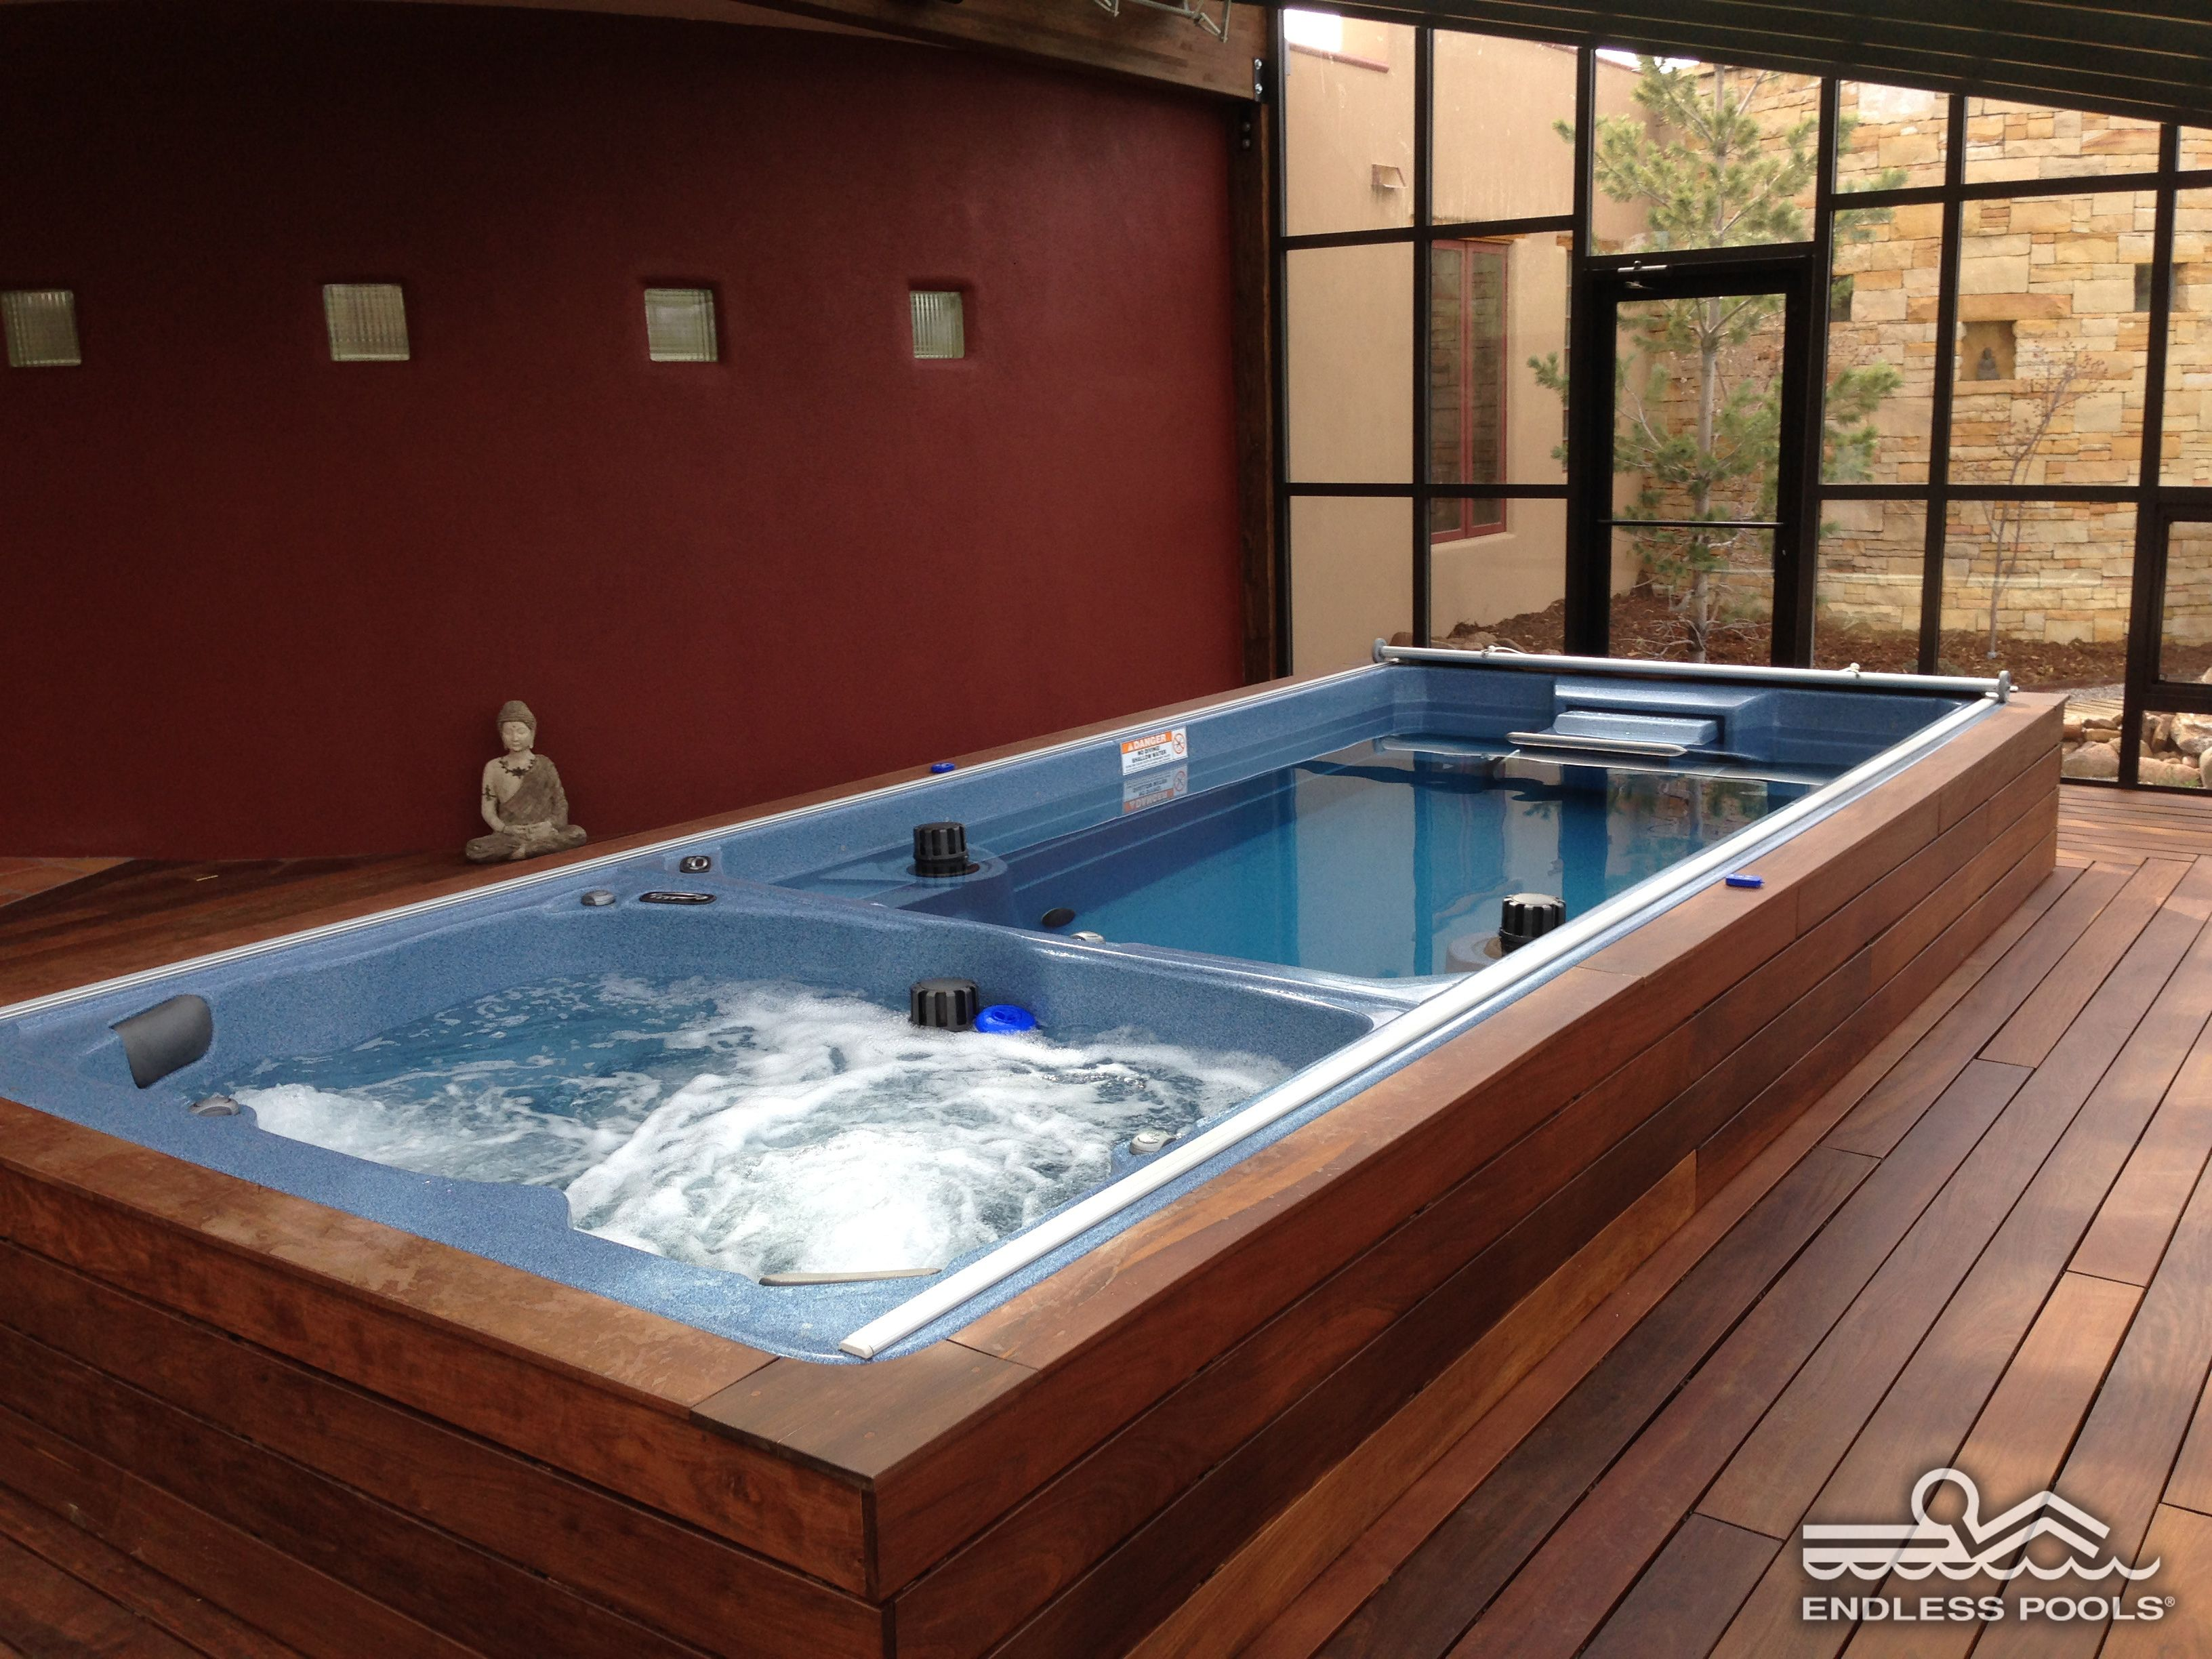 Pin by Bonnie Hepler on Home in 2019 | Small indoor pool ...